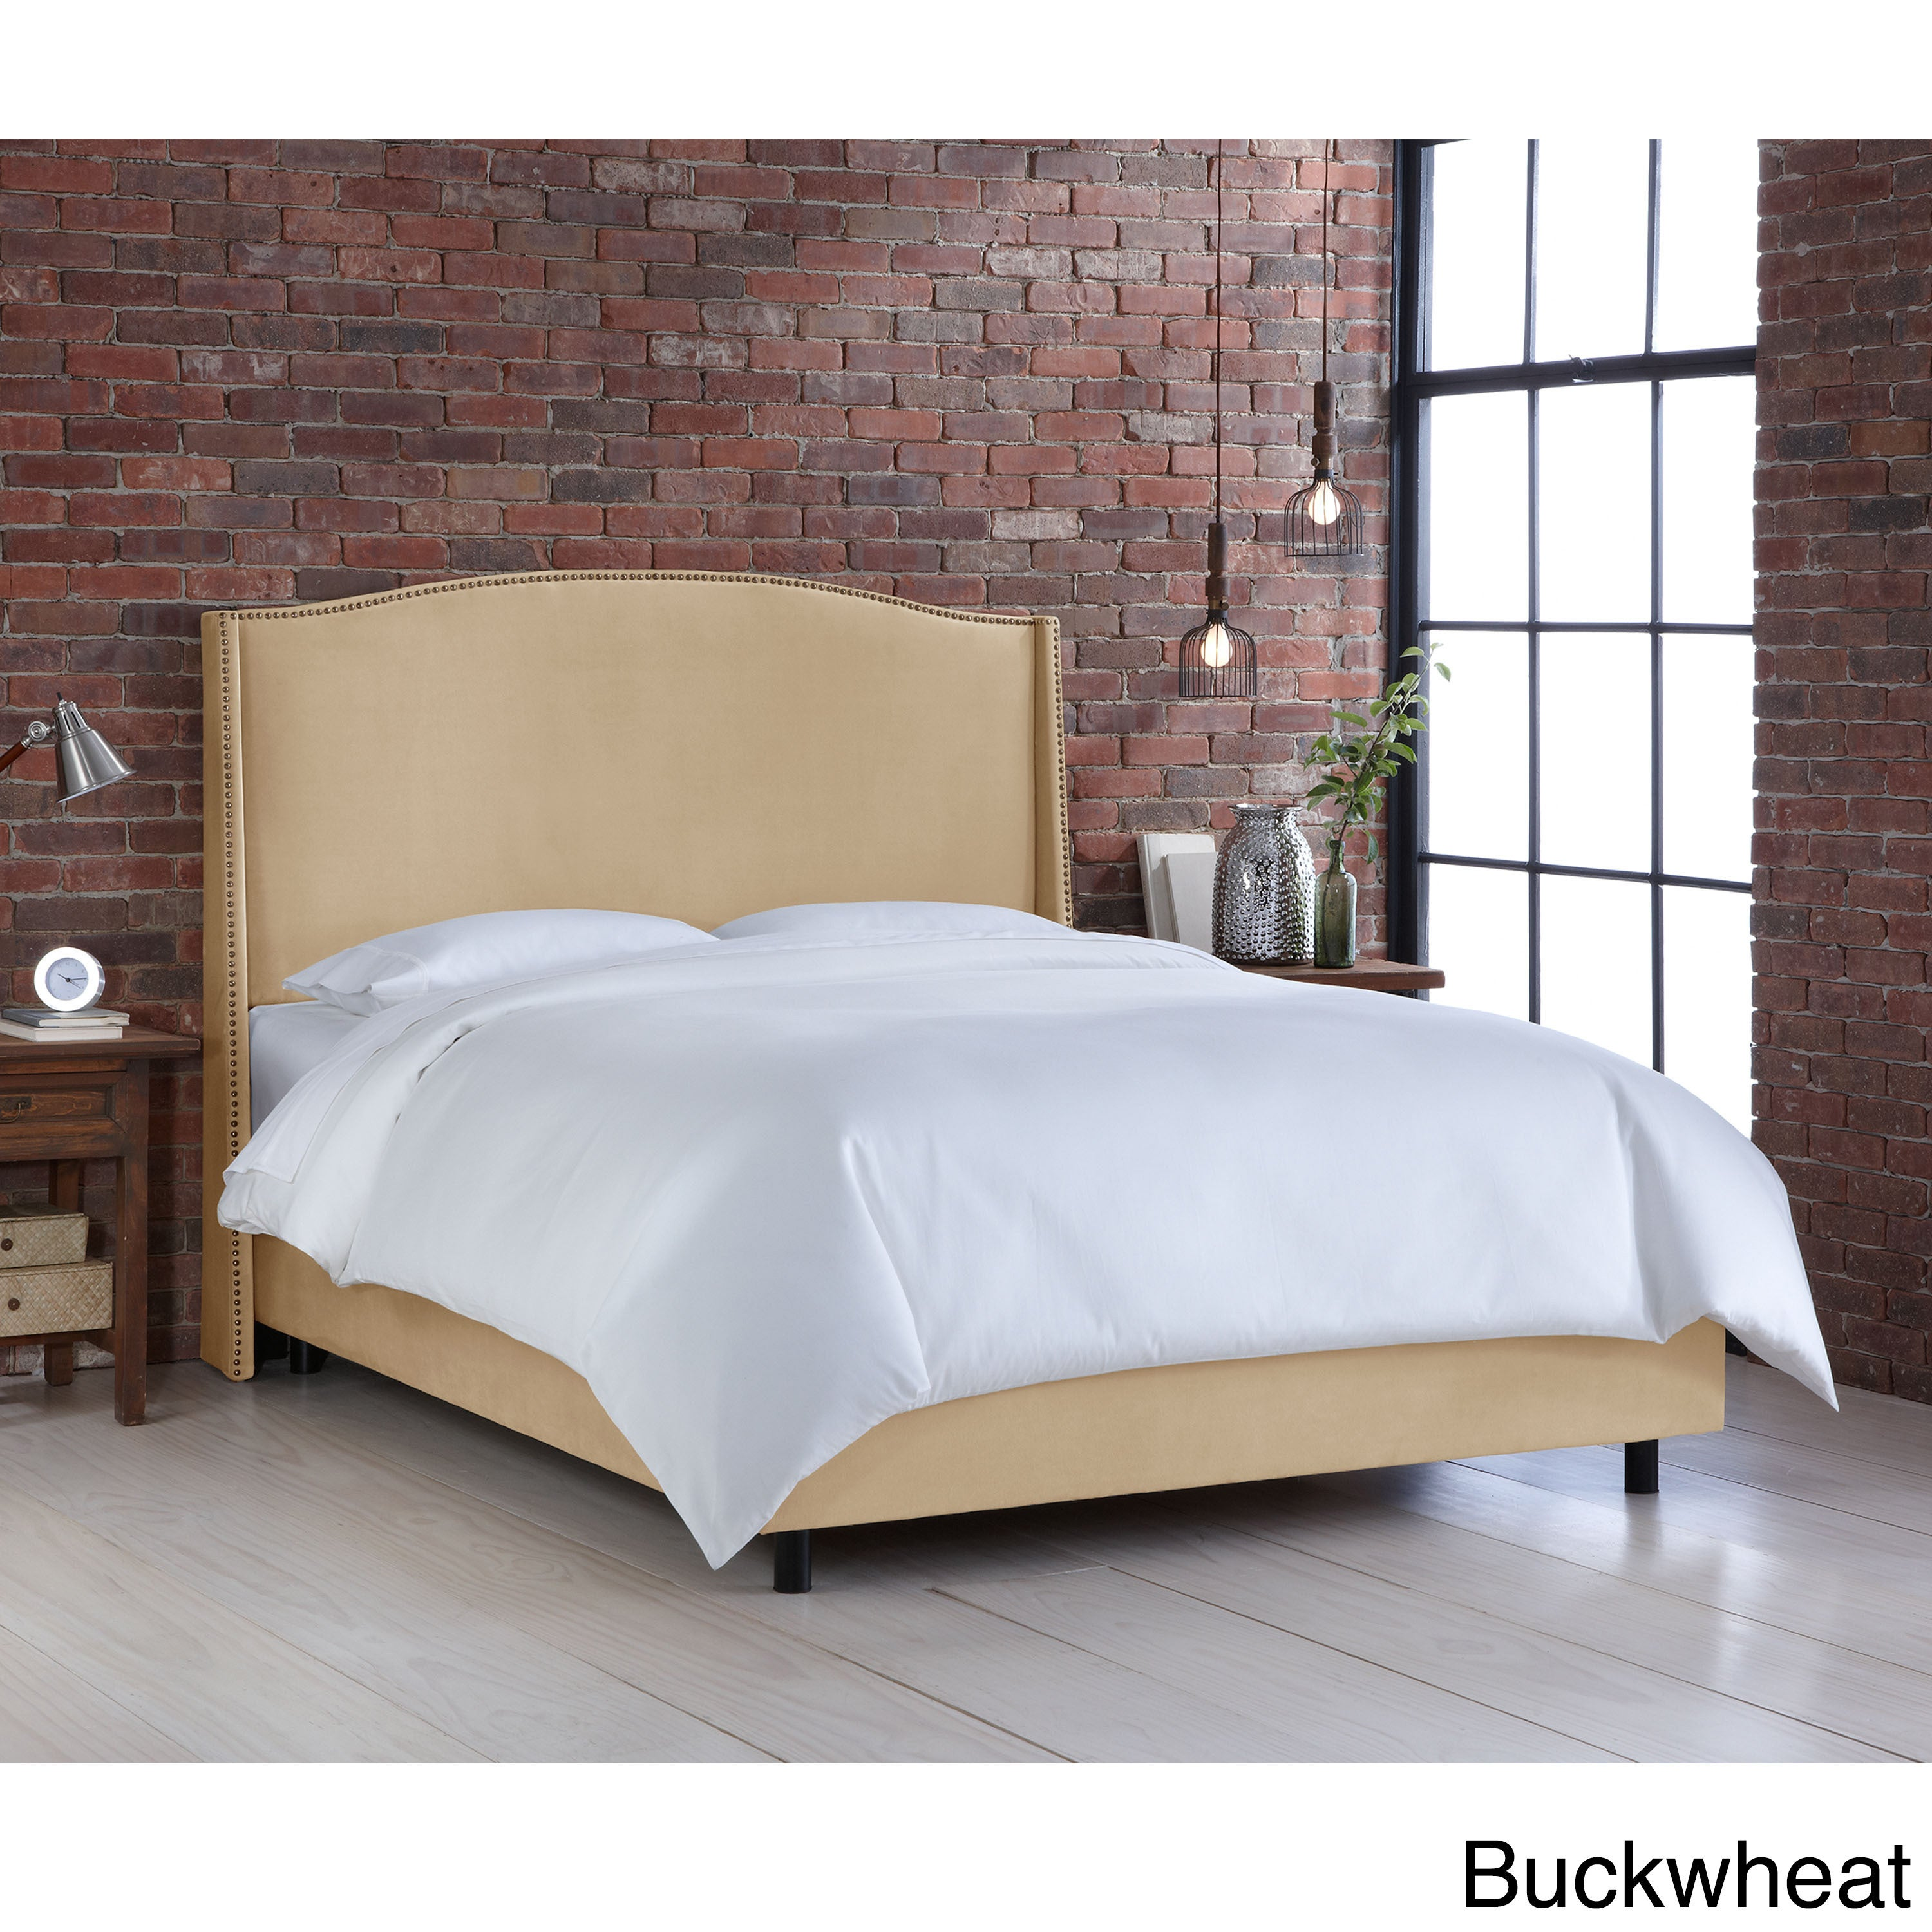 images furniture files upholstered and headboards u wayfair silk fascinating of style wingback design skyline cool reviews cupboard picture headboard